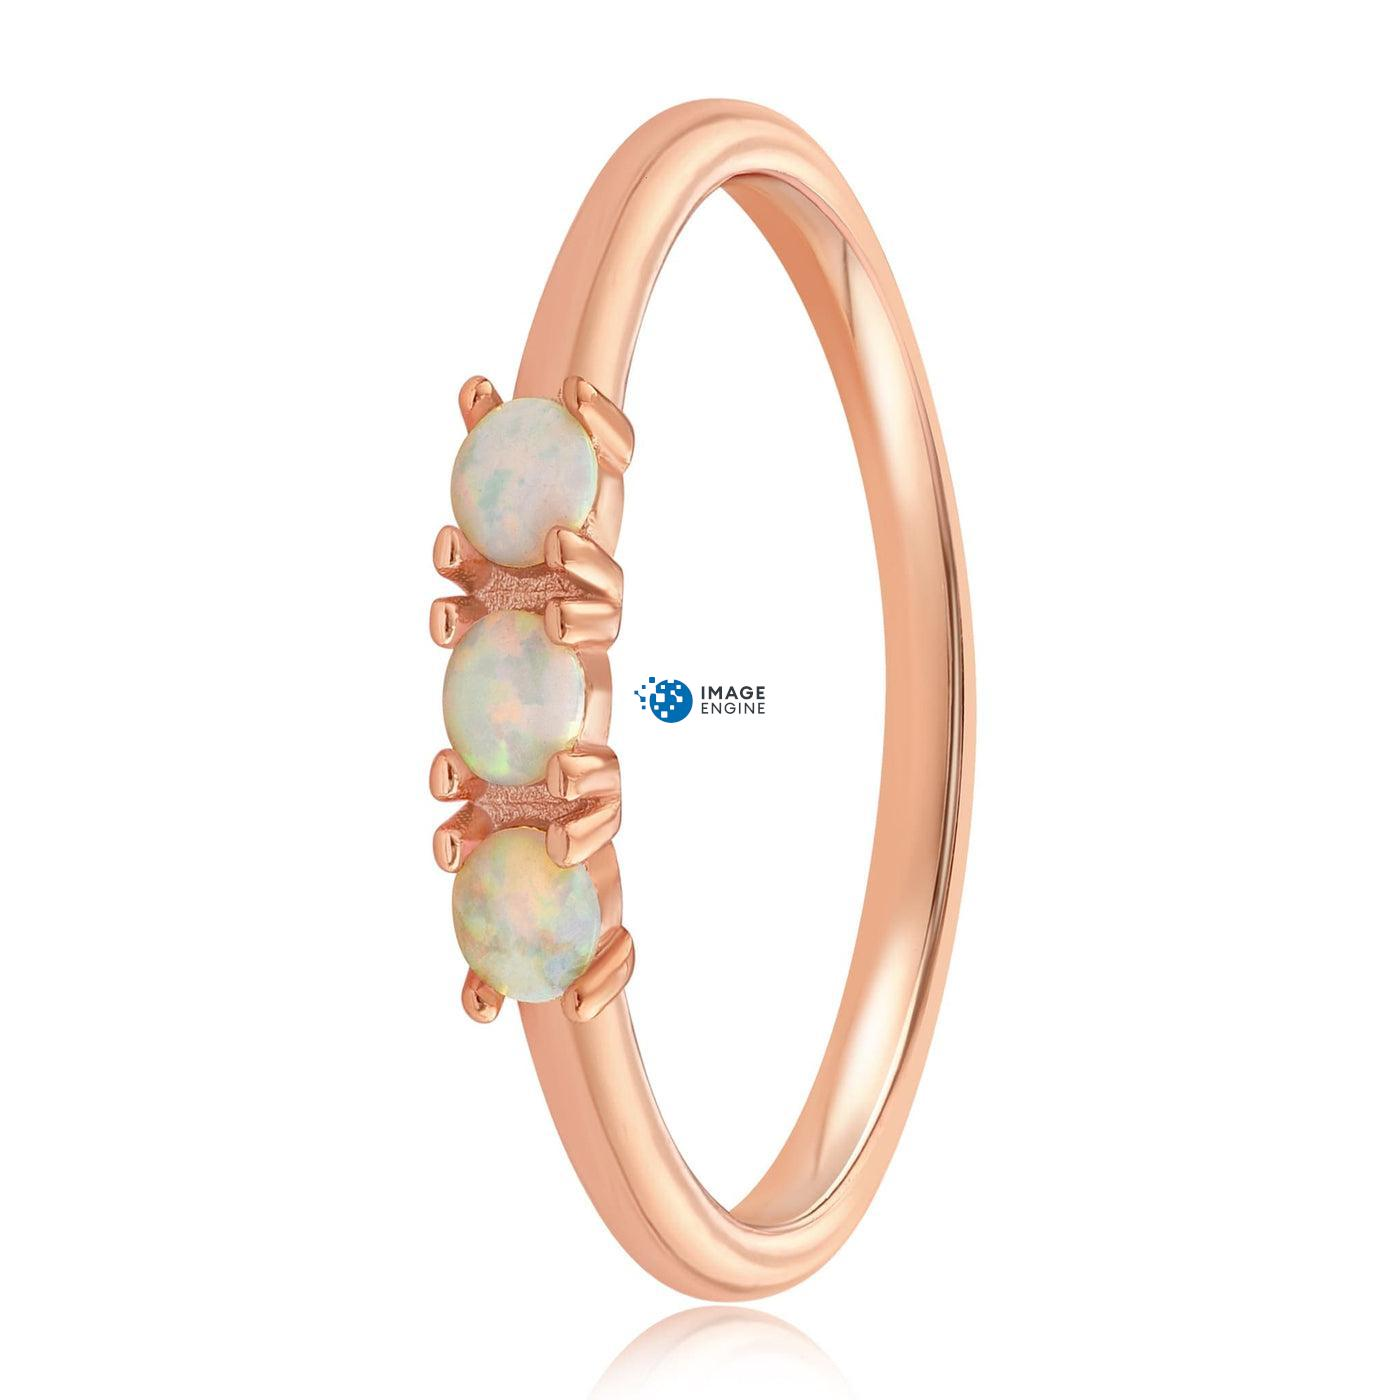 Simple Dots White Fire Opal Ring - Side View - 18K Rose Gold Vermeil